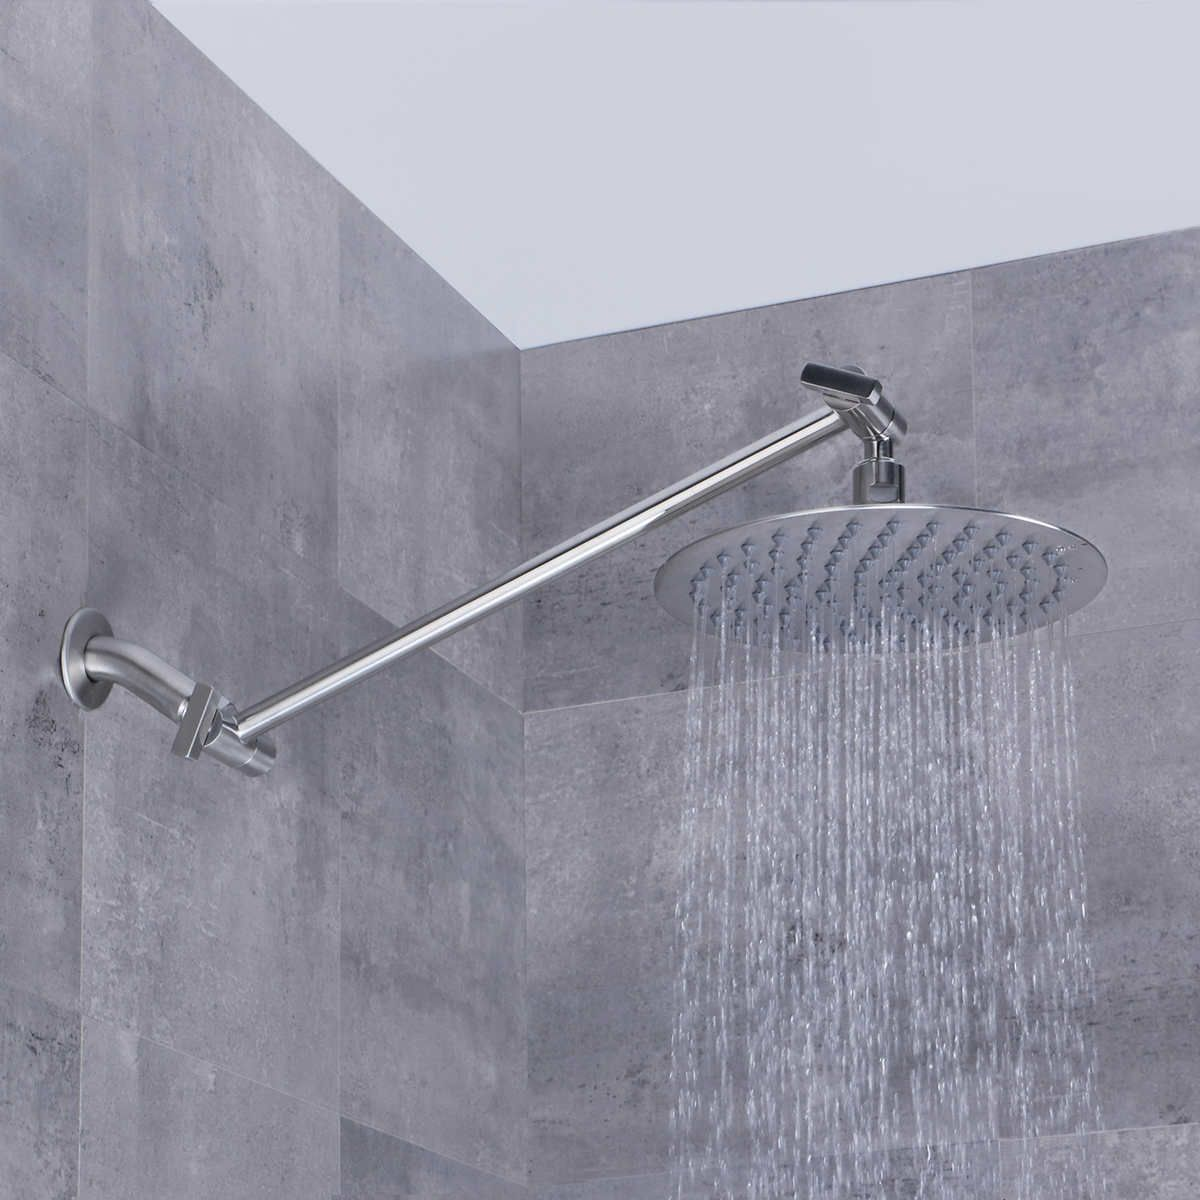 Afa Stainless 8 Rain Shower Head With Extension Arm Rain Shower Head Shower Head Extension Adjustable Shower Head